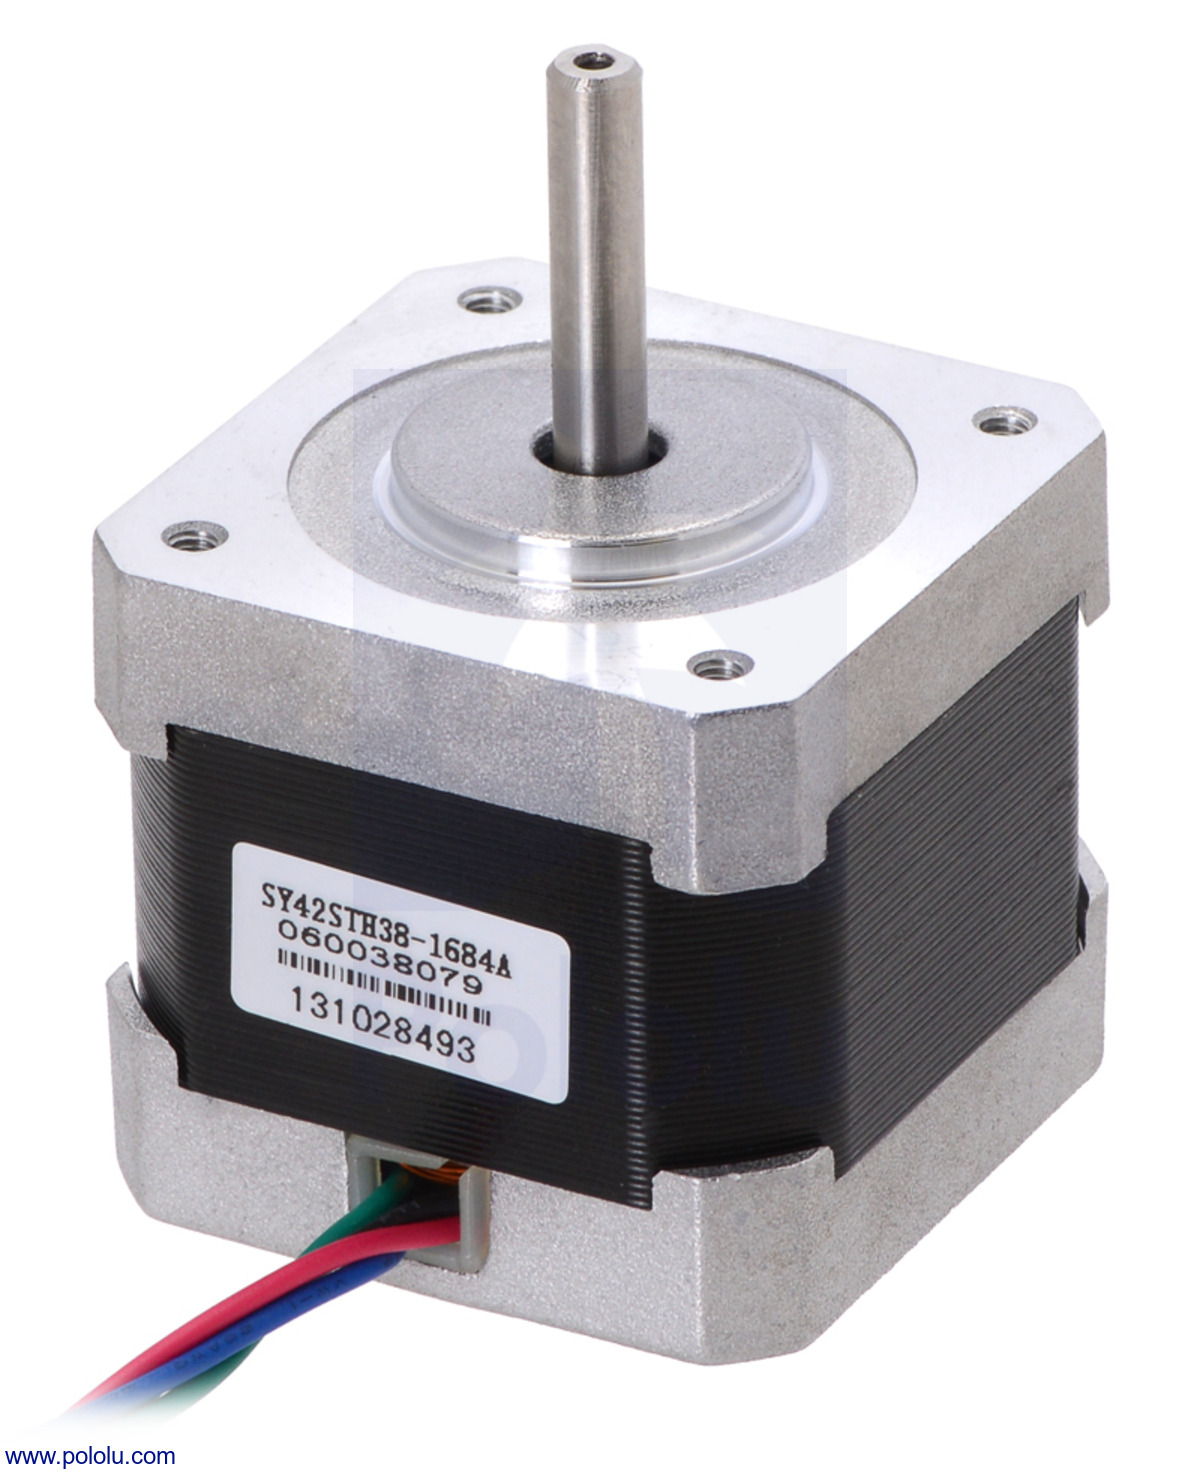 Pololu Stepper Motor Bipolar 200 Steps Rev 42 38mm 2